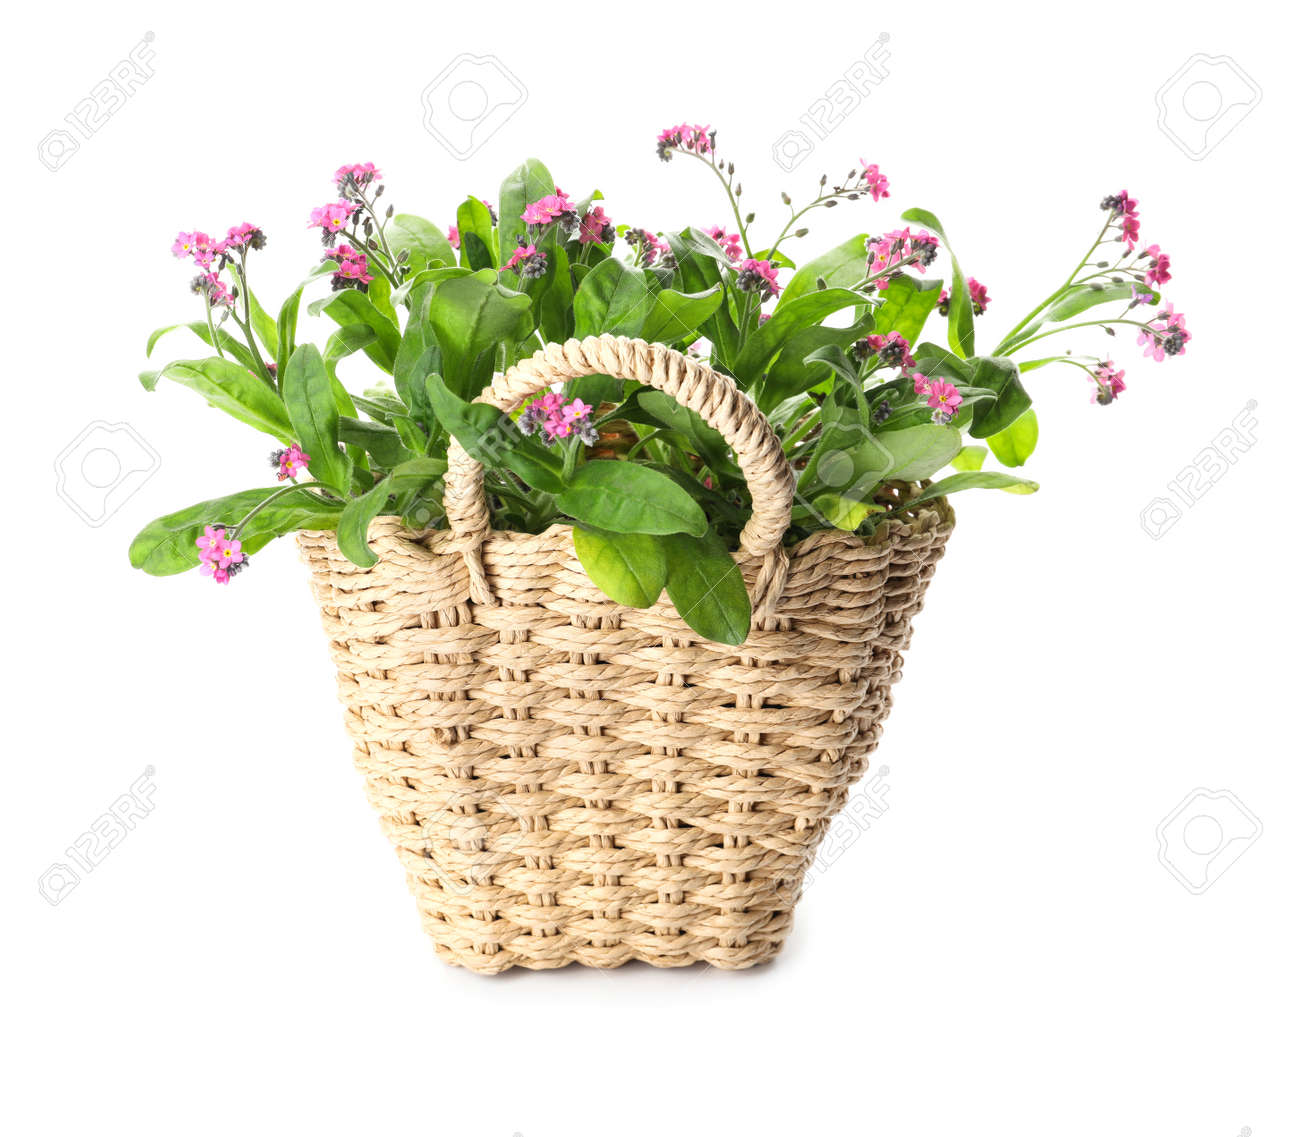 Beautiful potted Forget-me-not flowers in basket on white background - 167803432